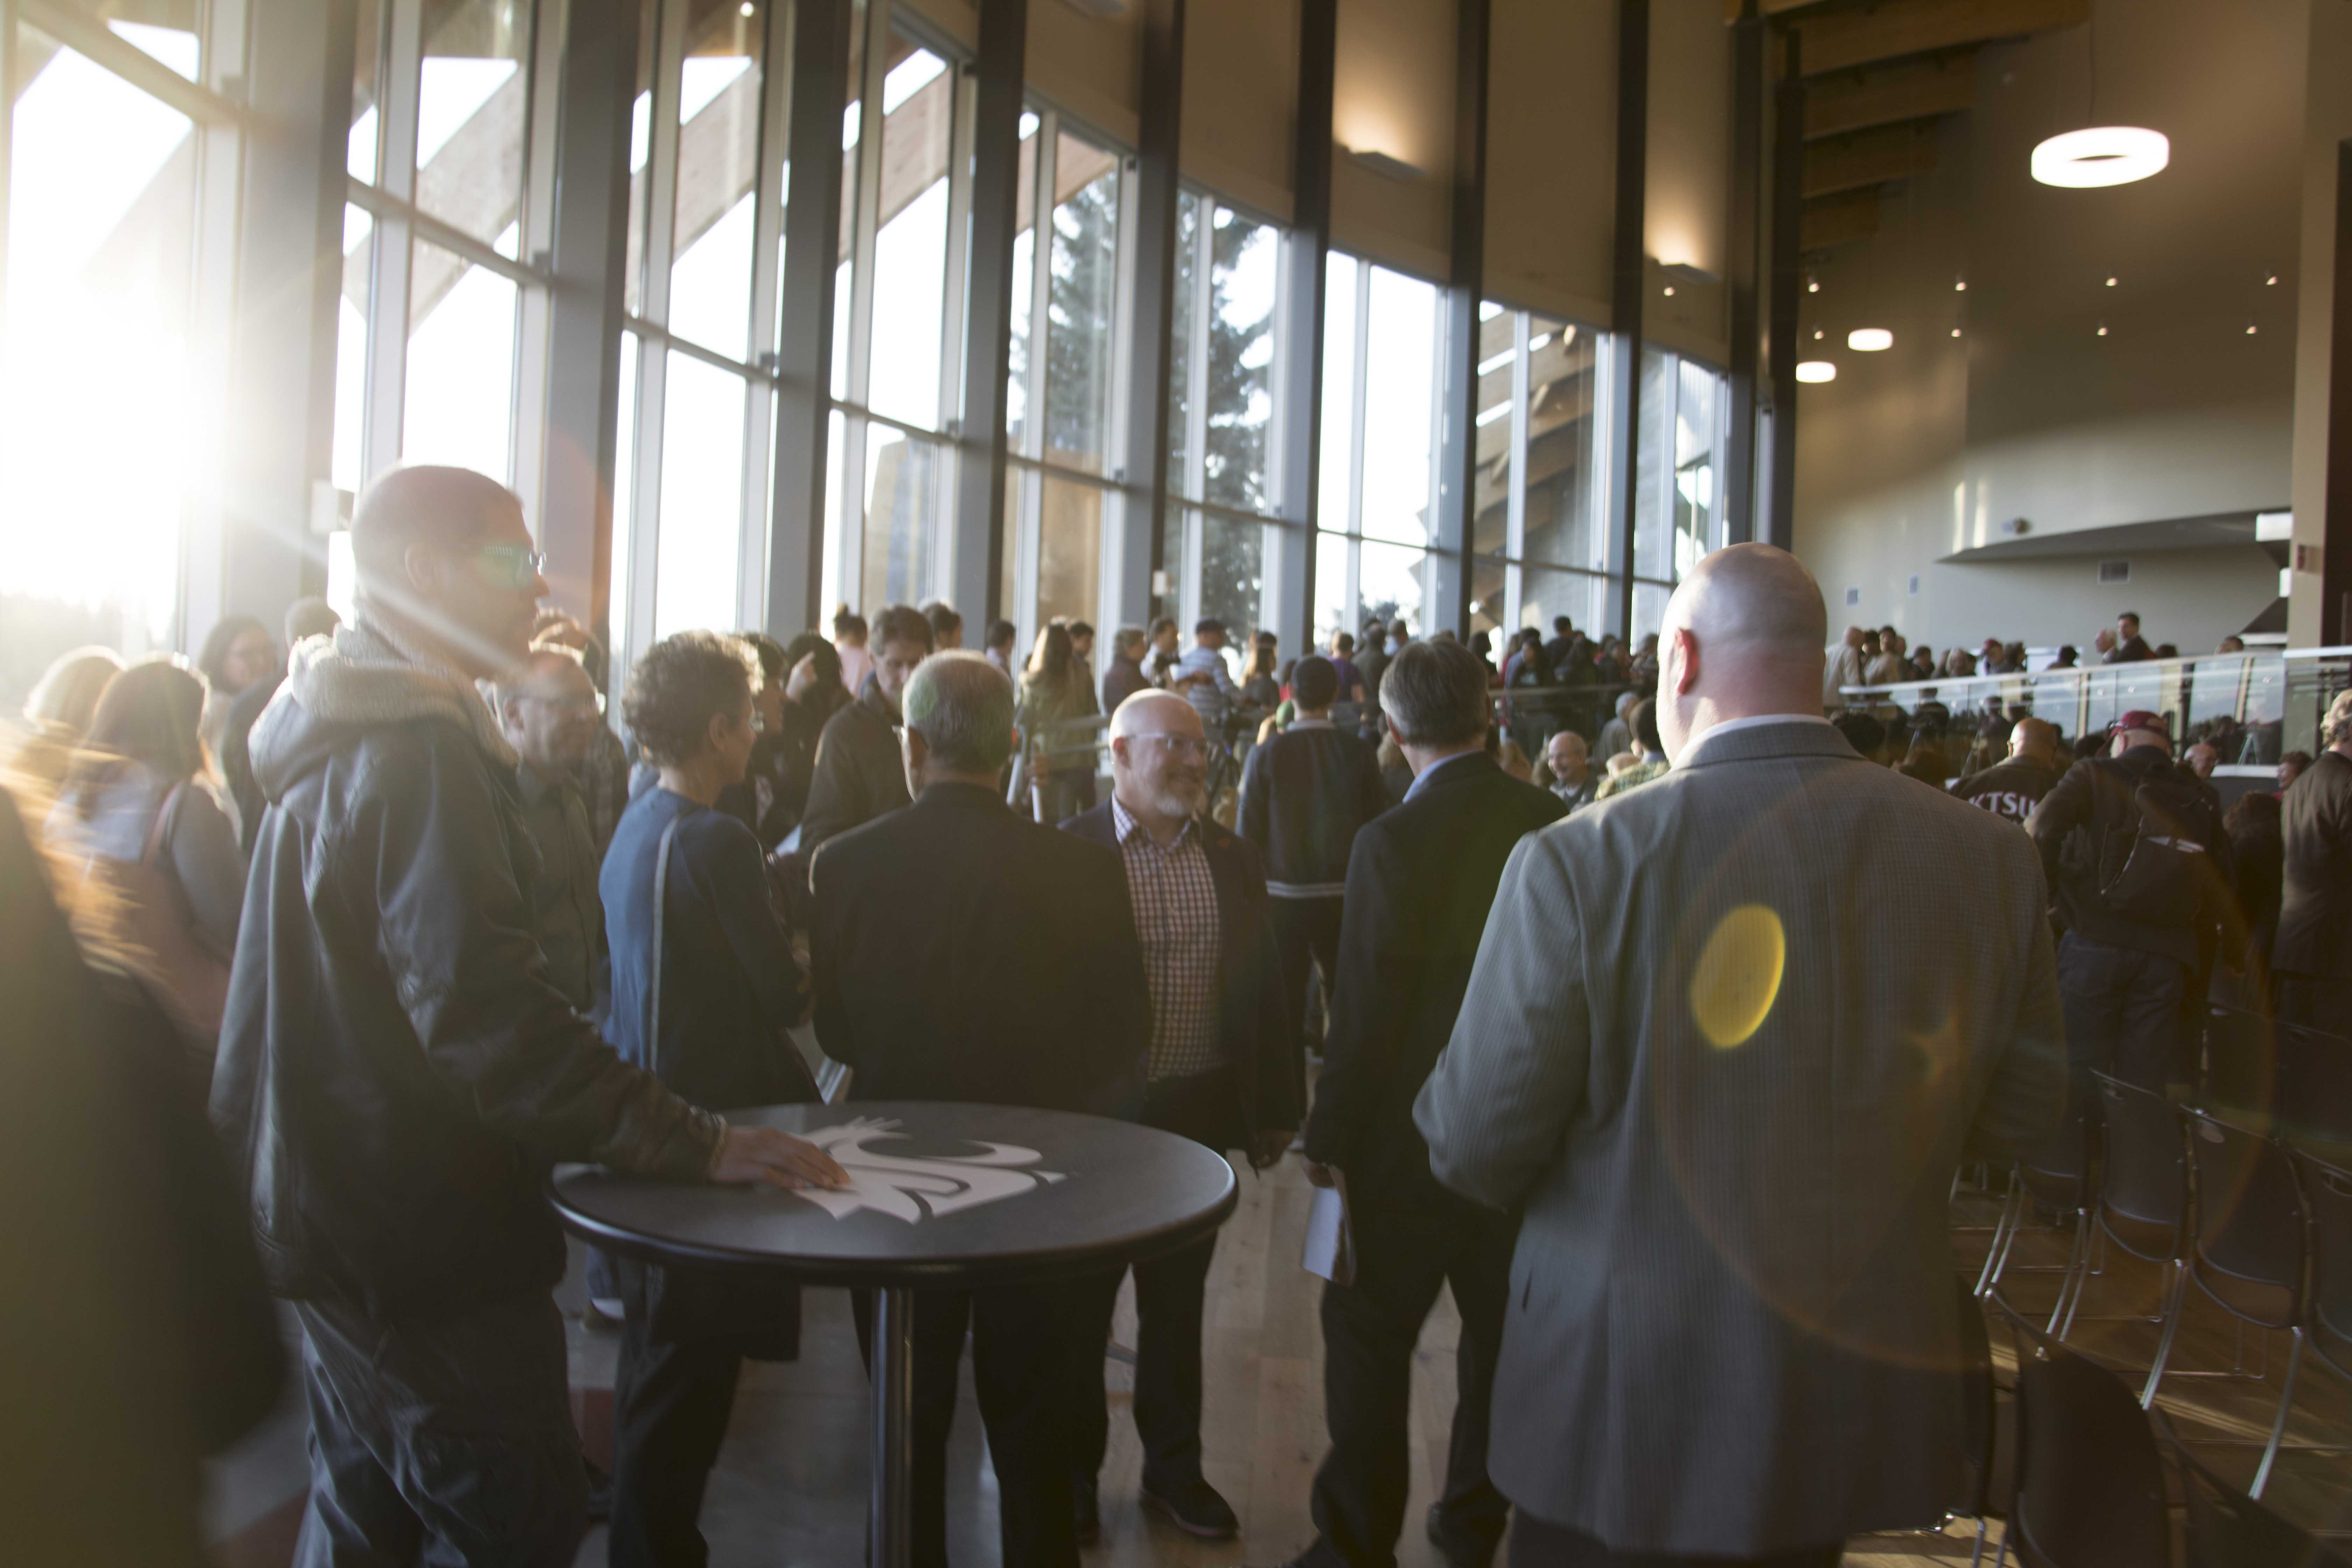 Large crowd standing during Cultural Center dedication with natural light streaming in.